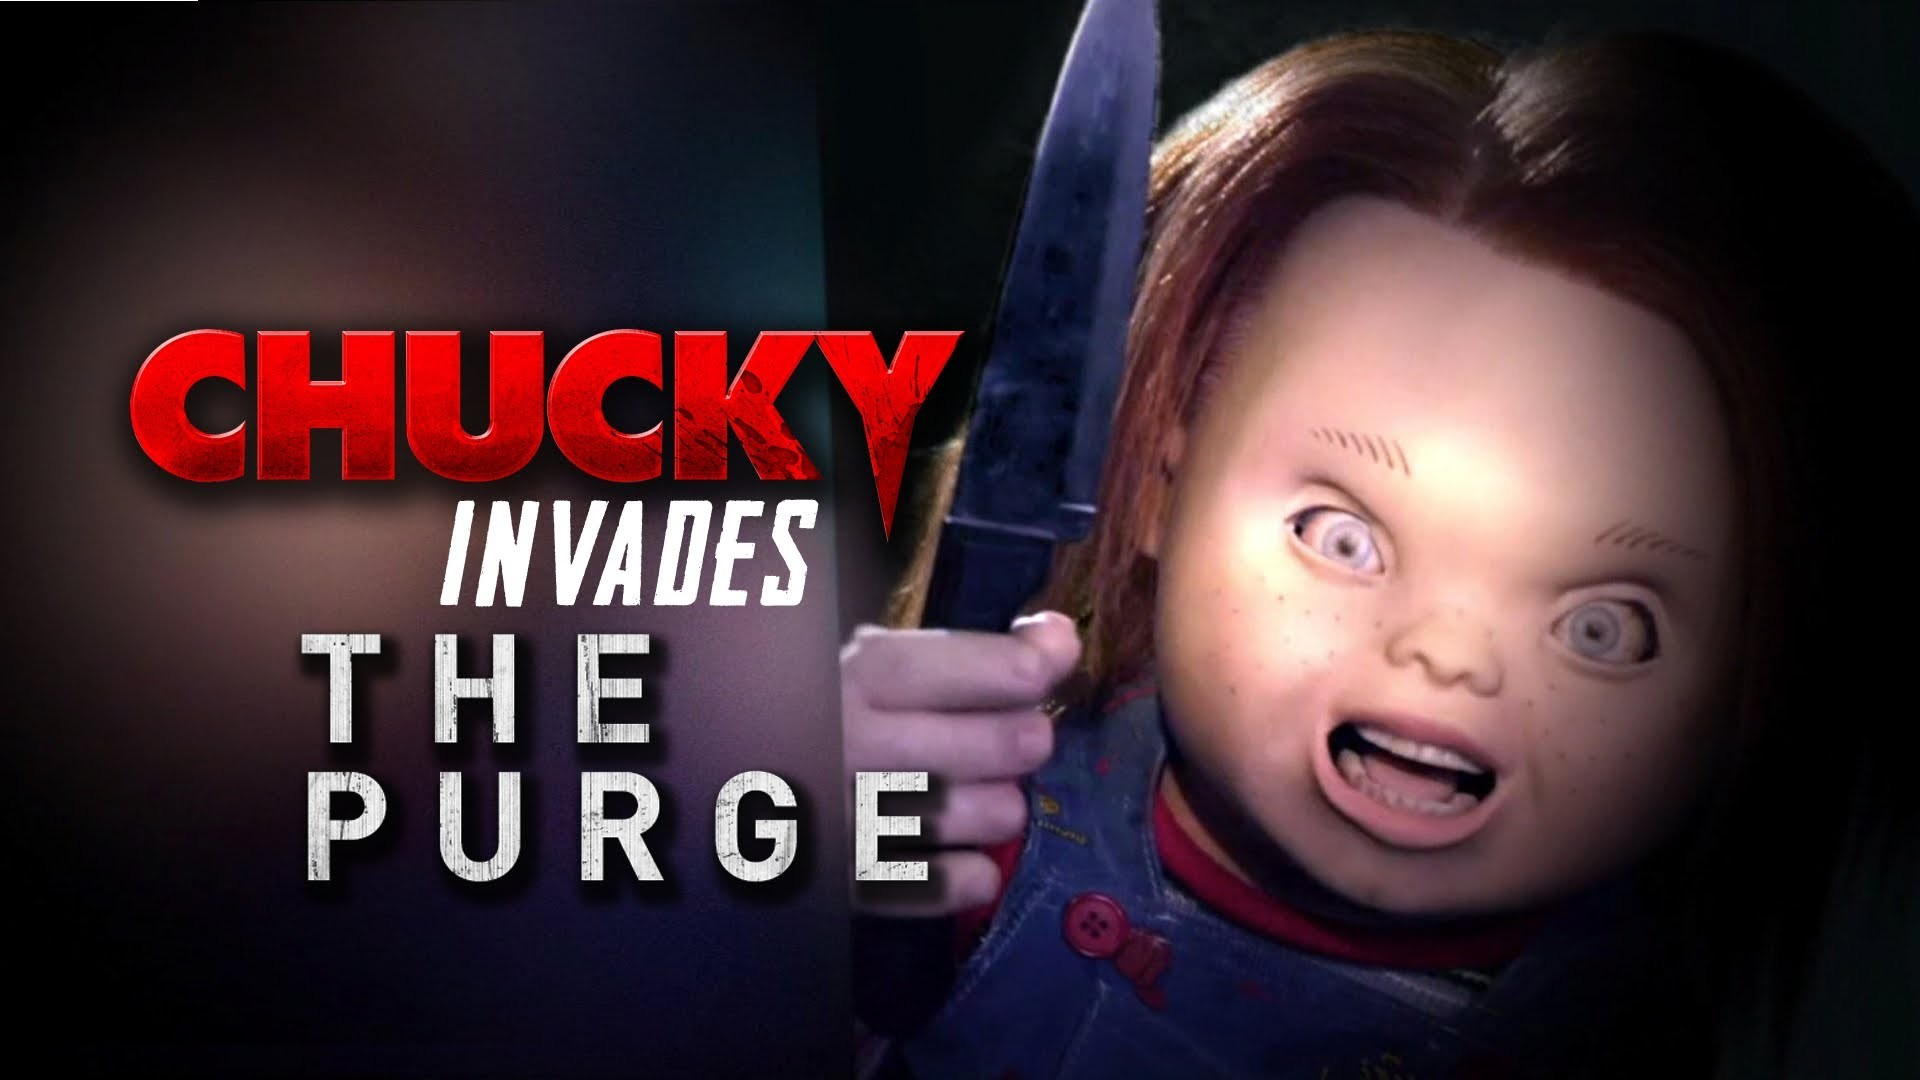 1920x1080 Video - Chucky Invades The Purge - Horror Movie MashUp (2013) Film HD |  Child's Play Wiki | FANDOM powered by Wikia